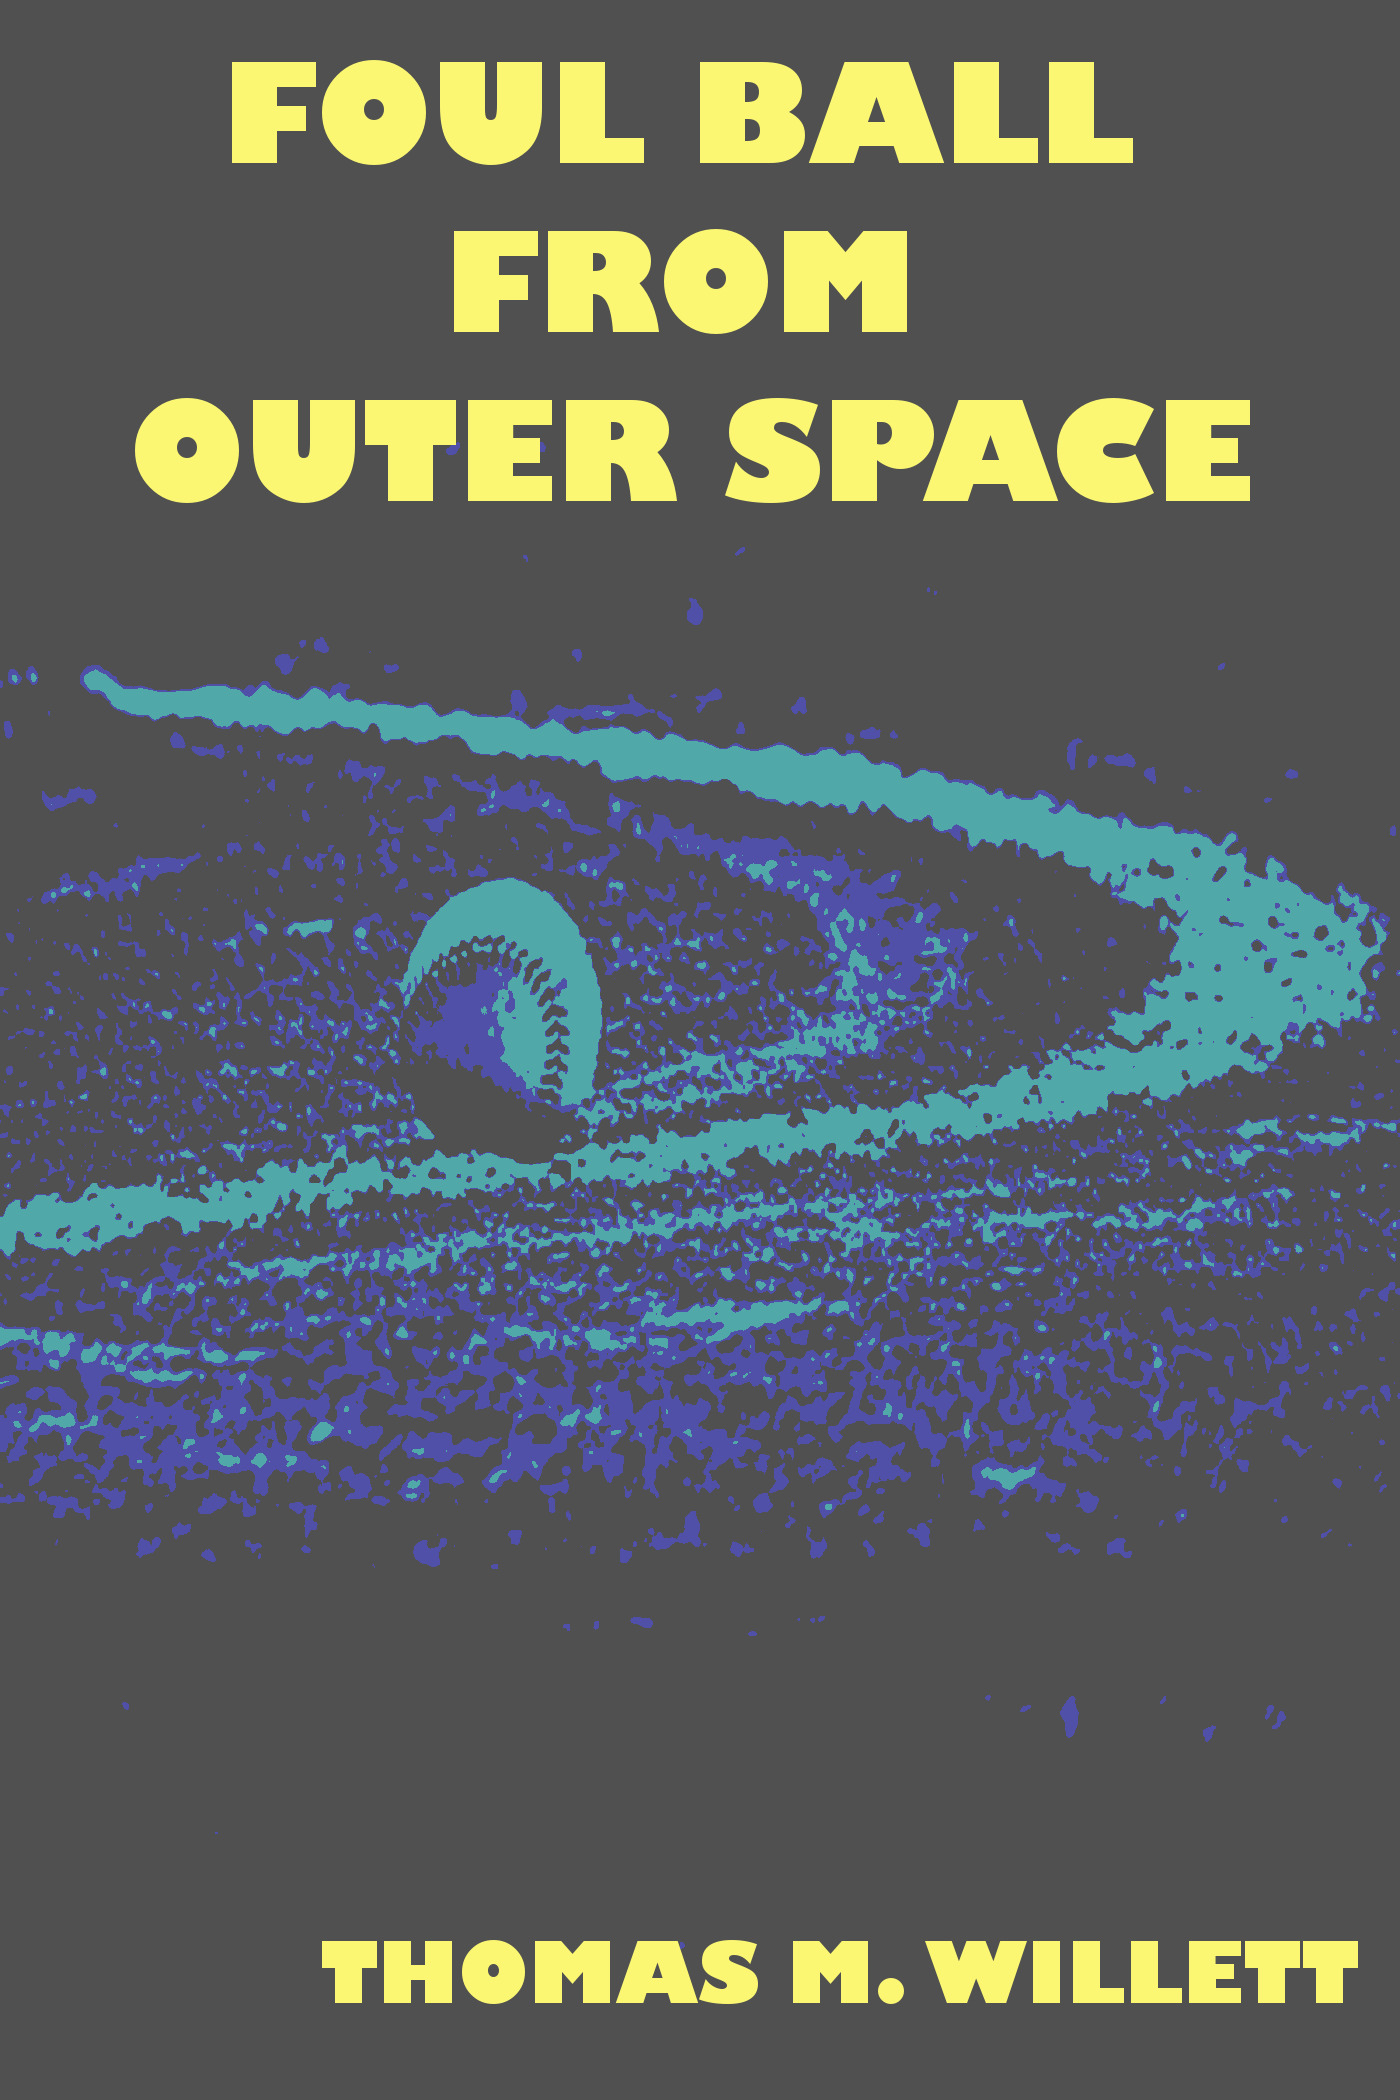 Foul Ball From Outer Space Thomas M. Willett